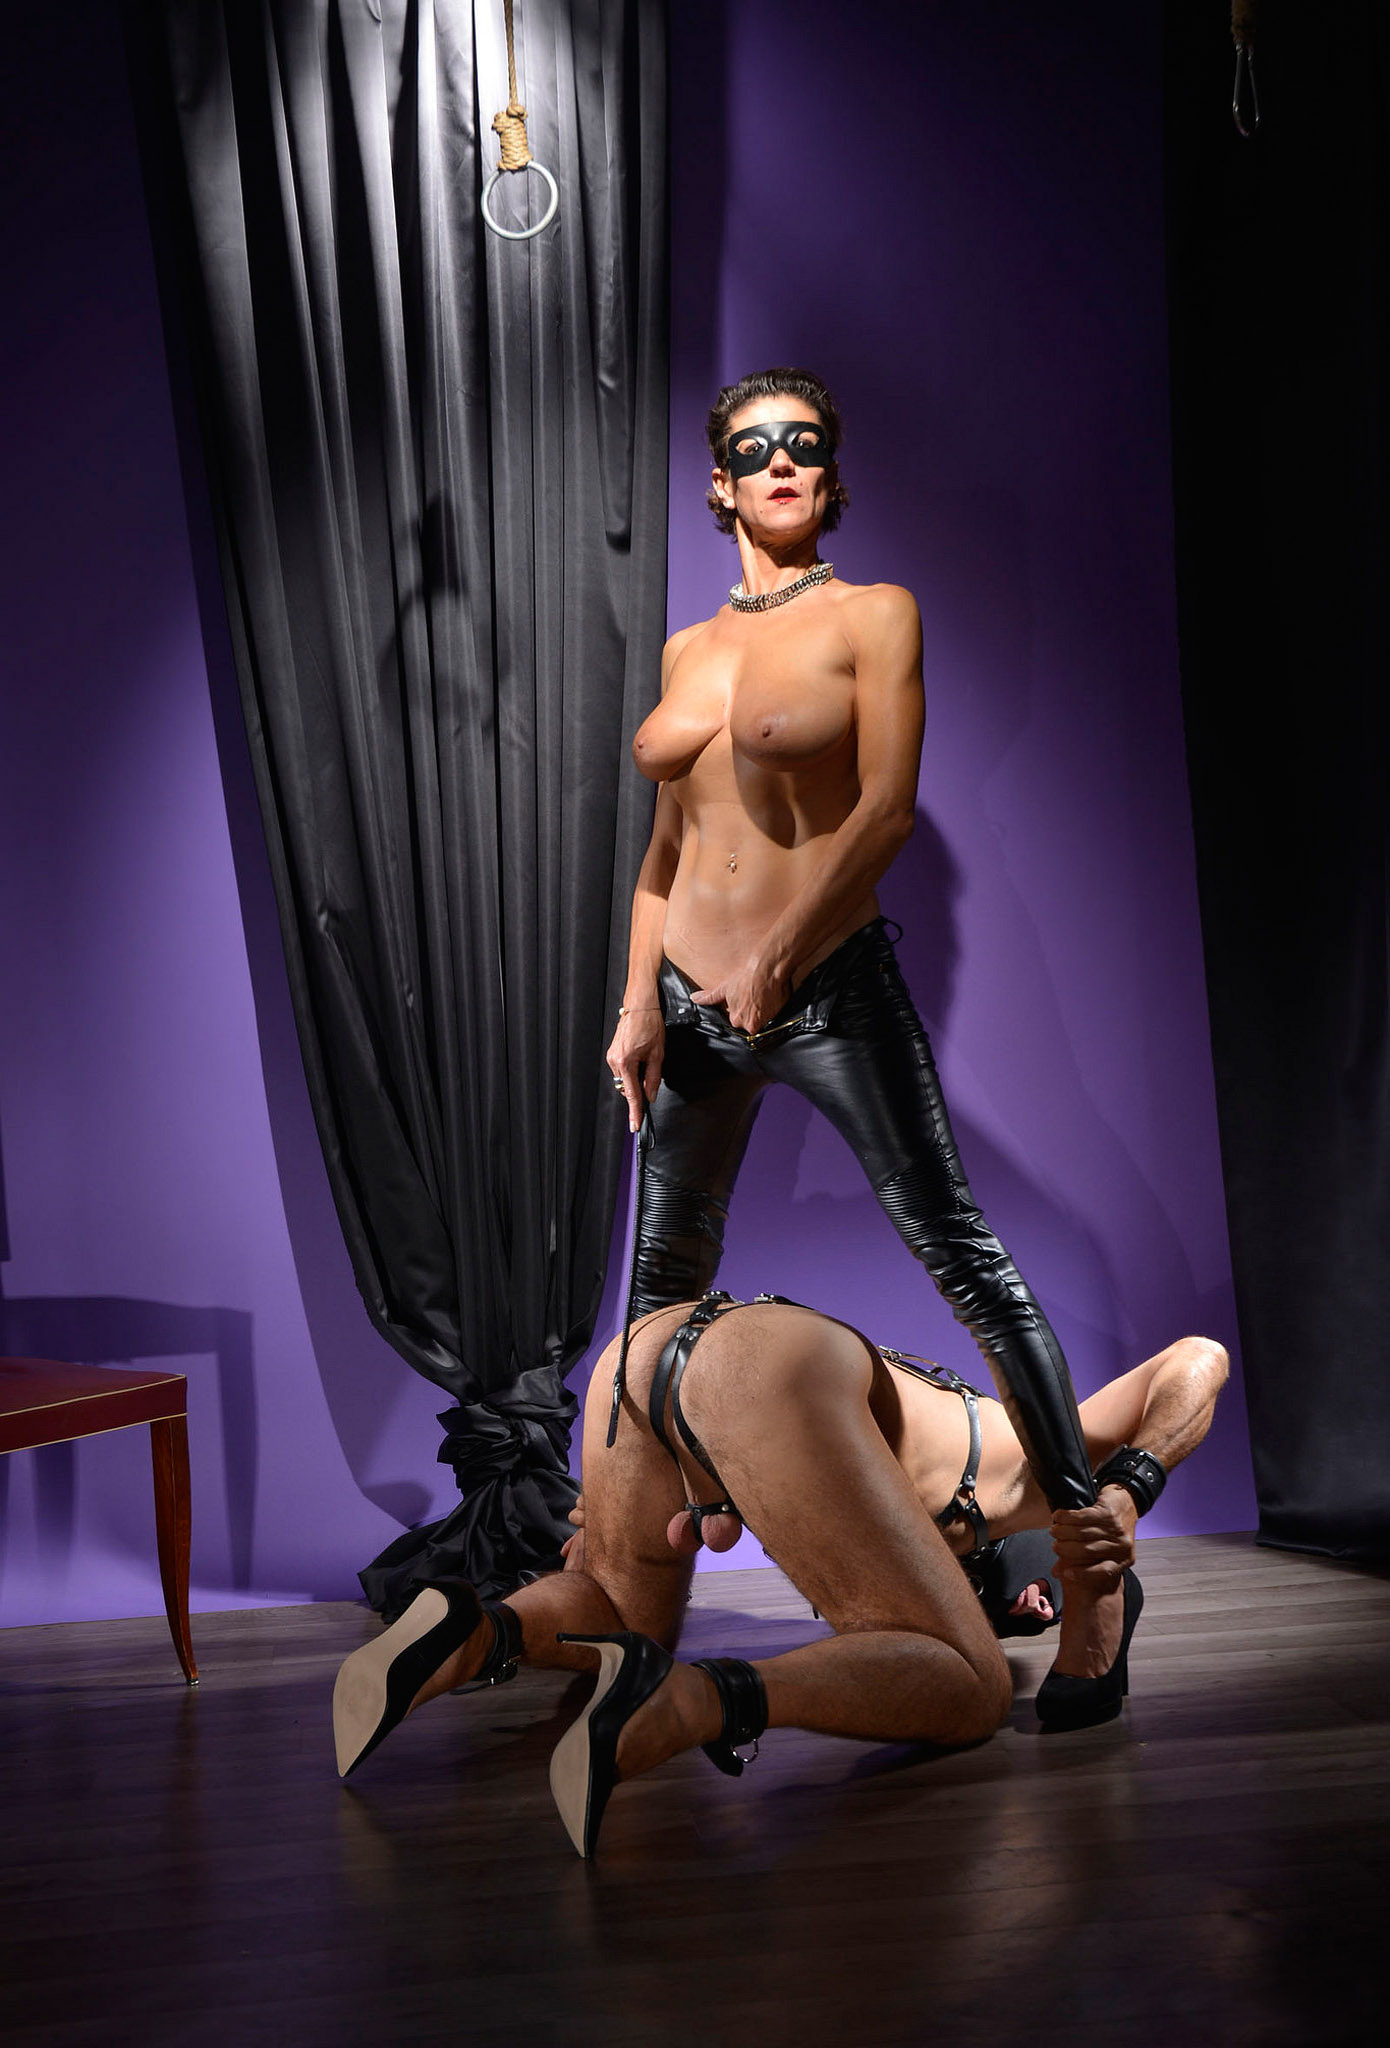 Femdom Fetish Sluts Dress Up Humiliation - Free Porn